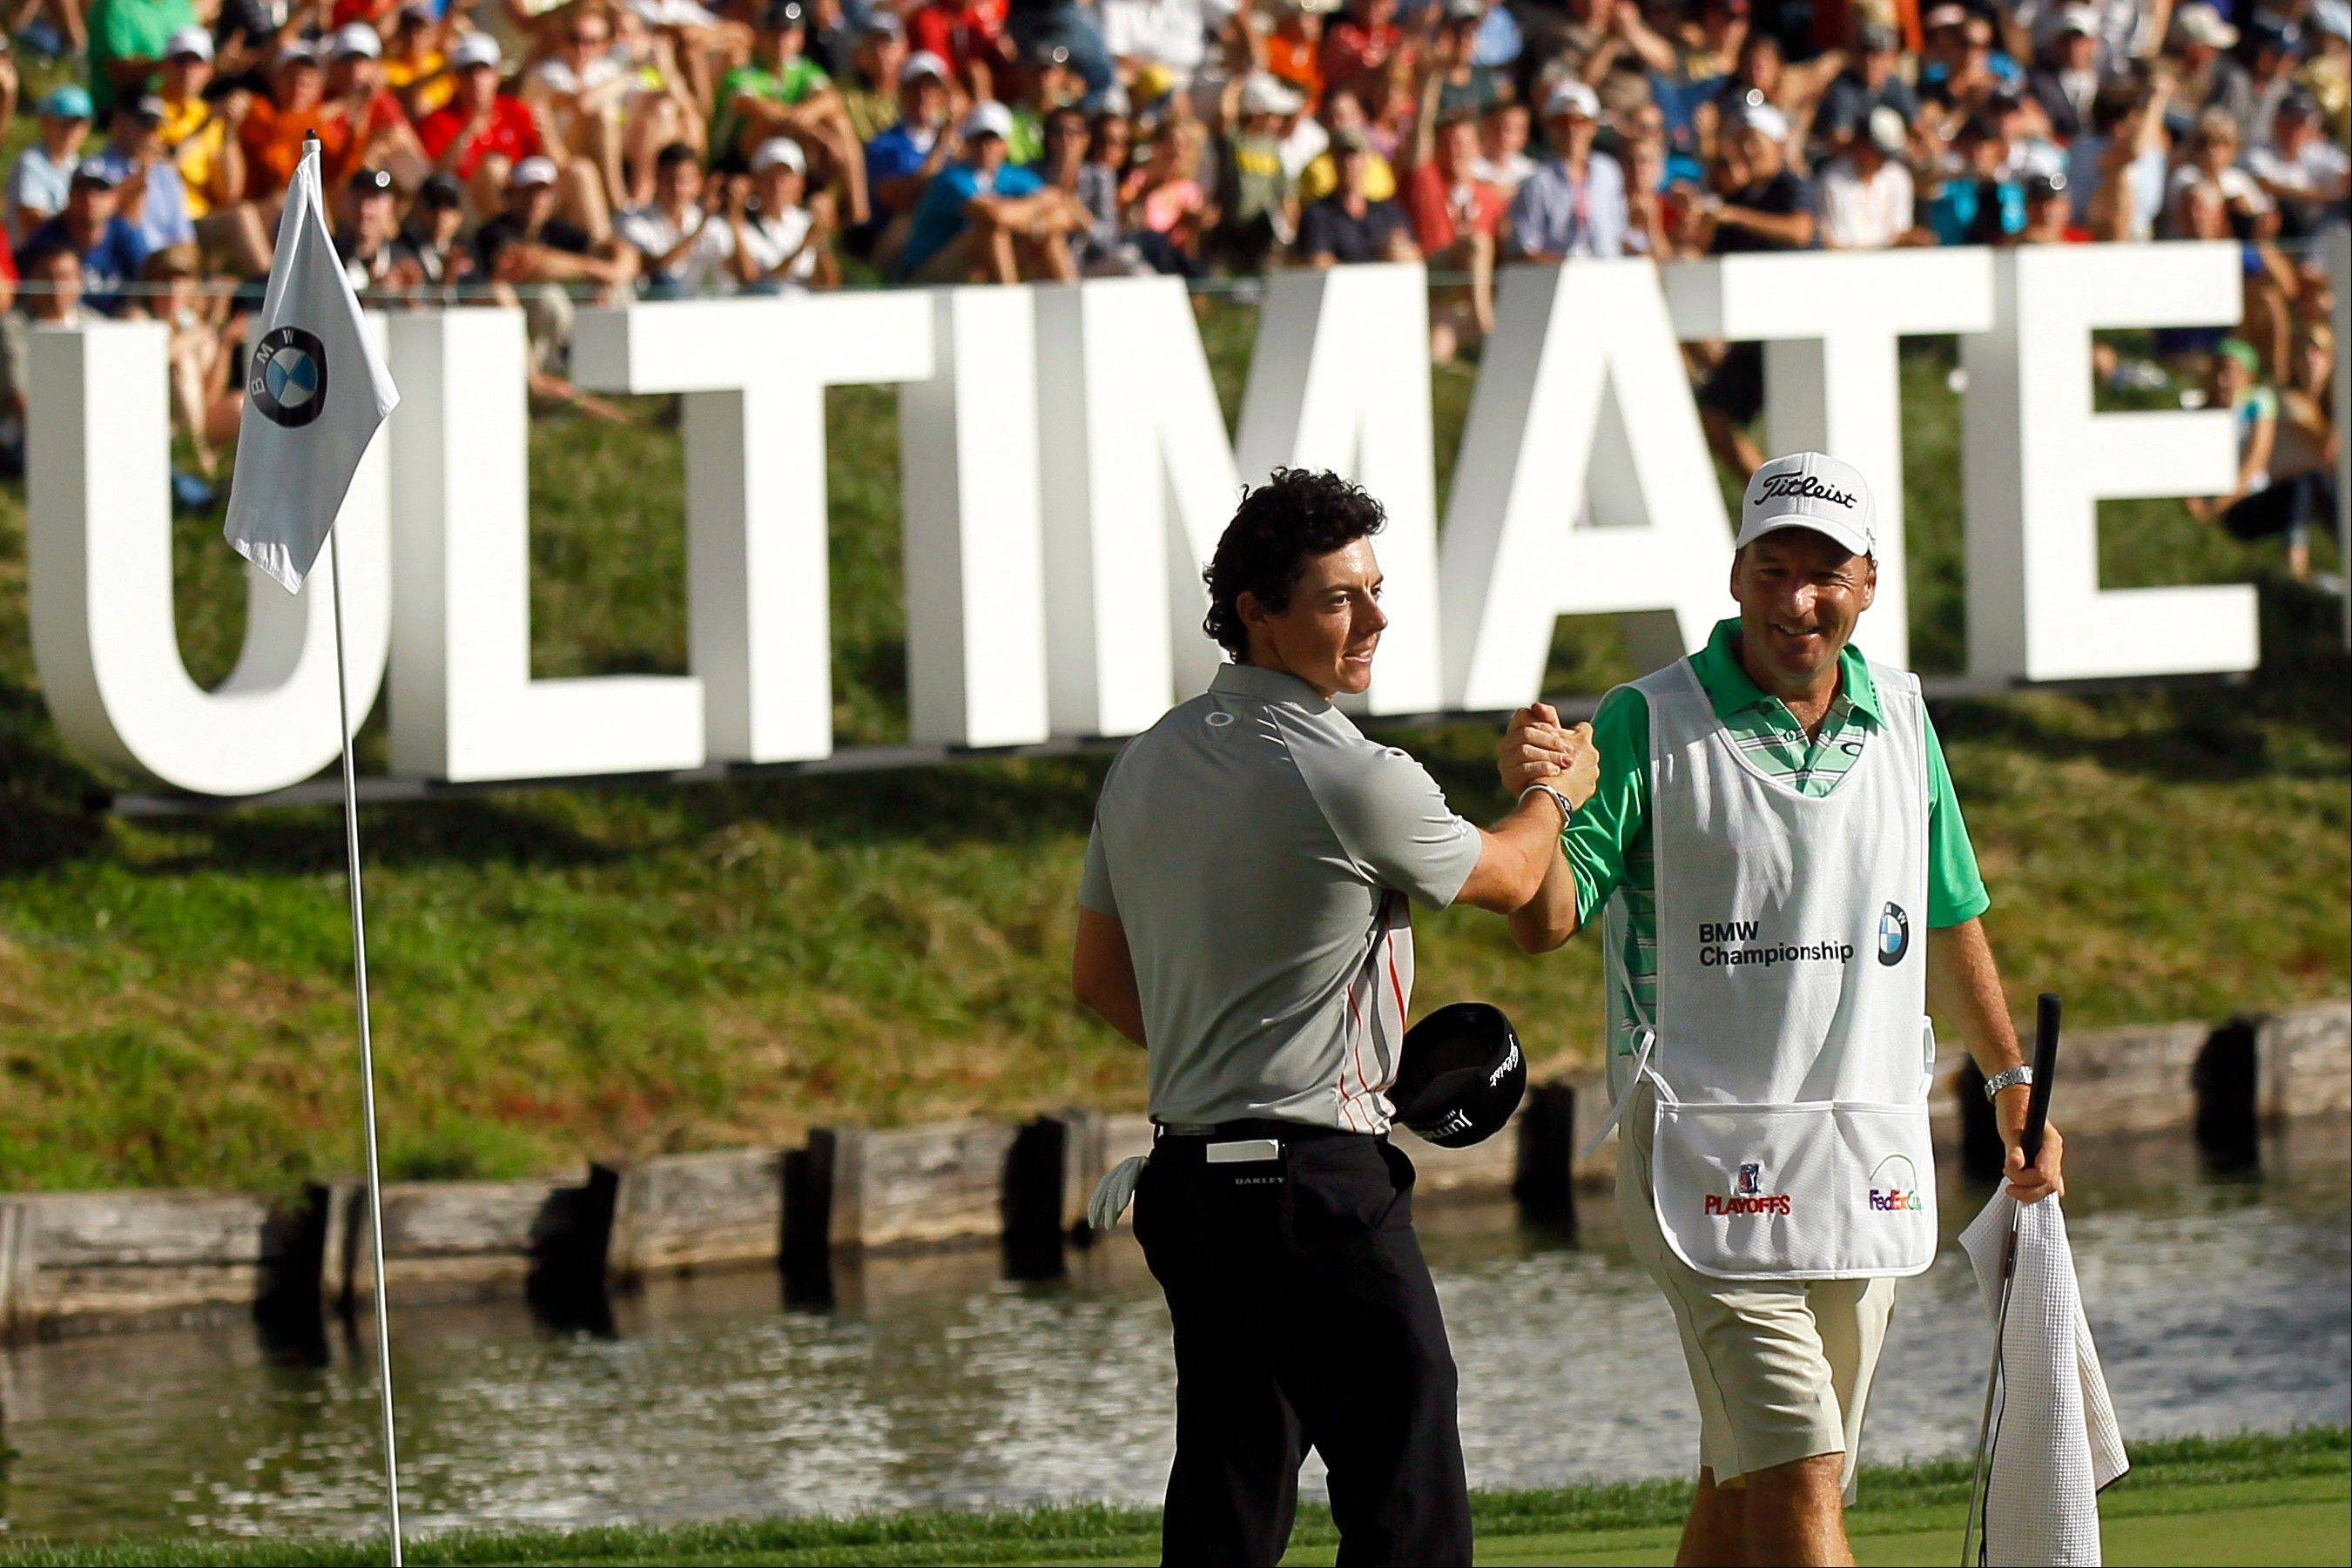 Rory McIlroy, left, of Northern Ireland, celebrates with caddie J.P. Fitzgerald after finishing the BMW Championship PGA golf tournament at Crooked Stick Golf Club in Carmel, Ind., Sunday, Sept. 9, 2012. McIlroy won the event.